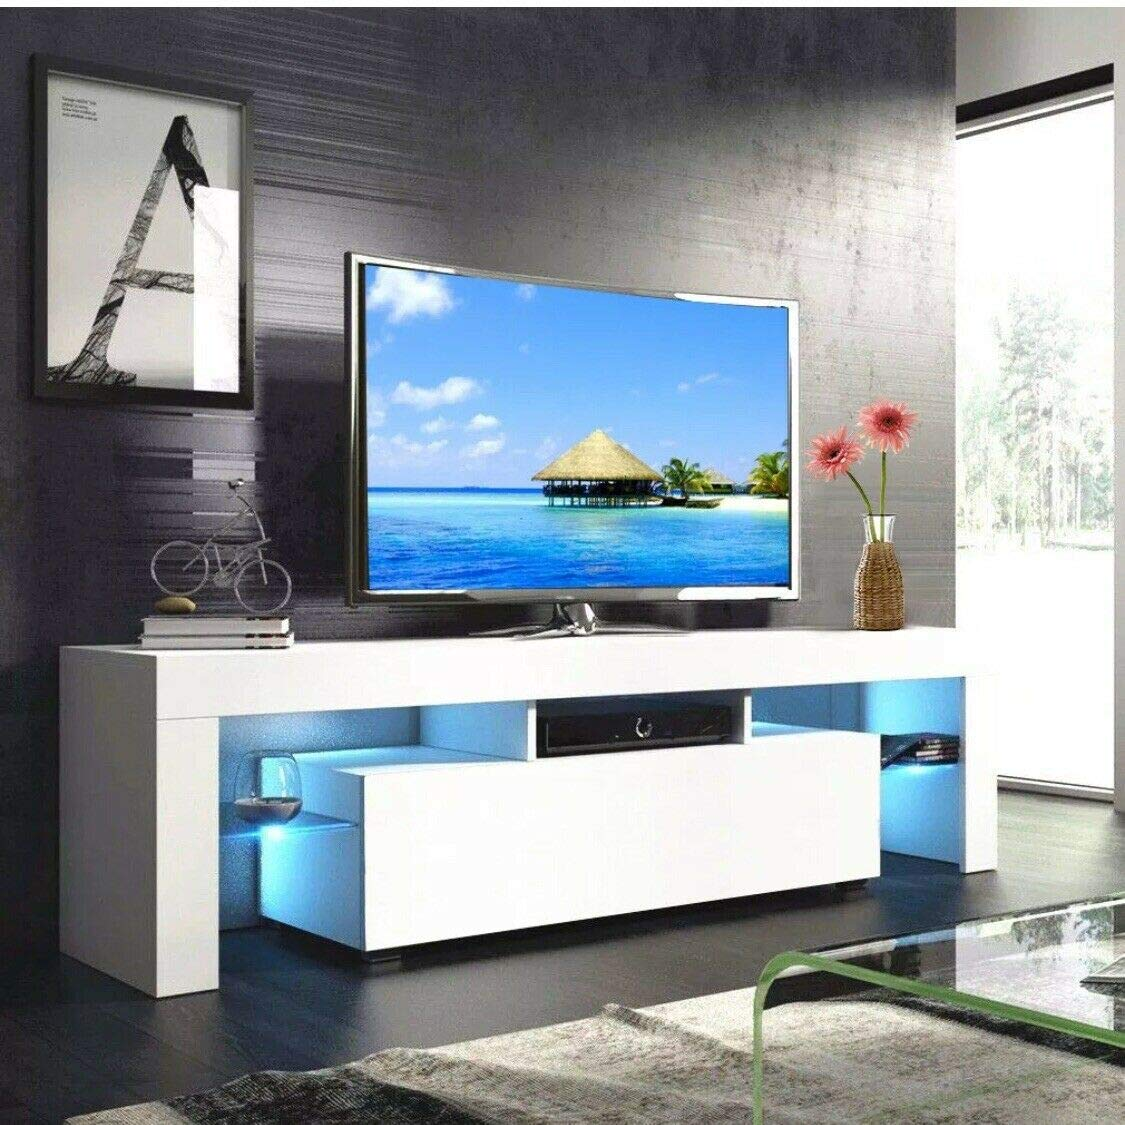 MTFY Modern Simple TV Stand with LED, Television Stand Entertainment Center Console Table for Living Room, for 51'' TV (White) by MTFY